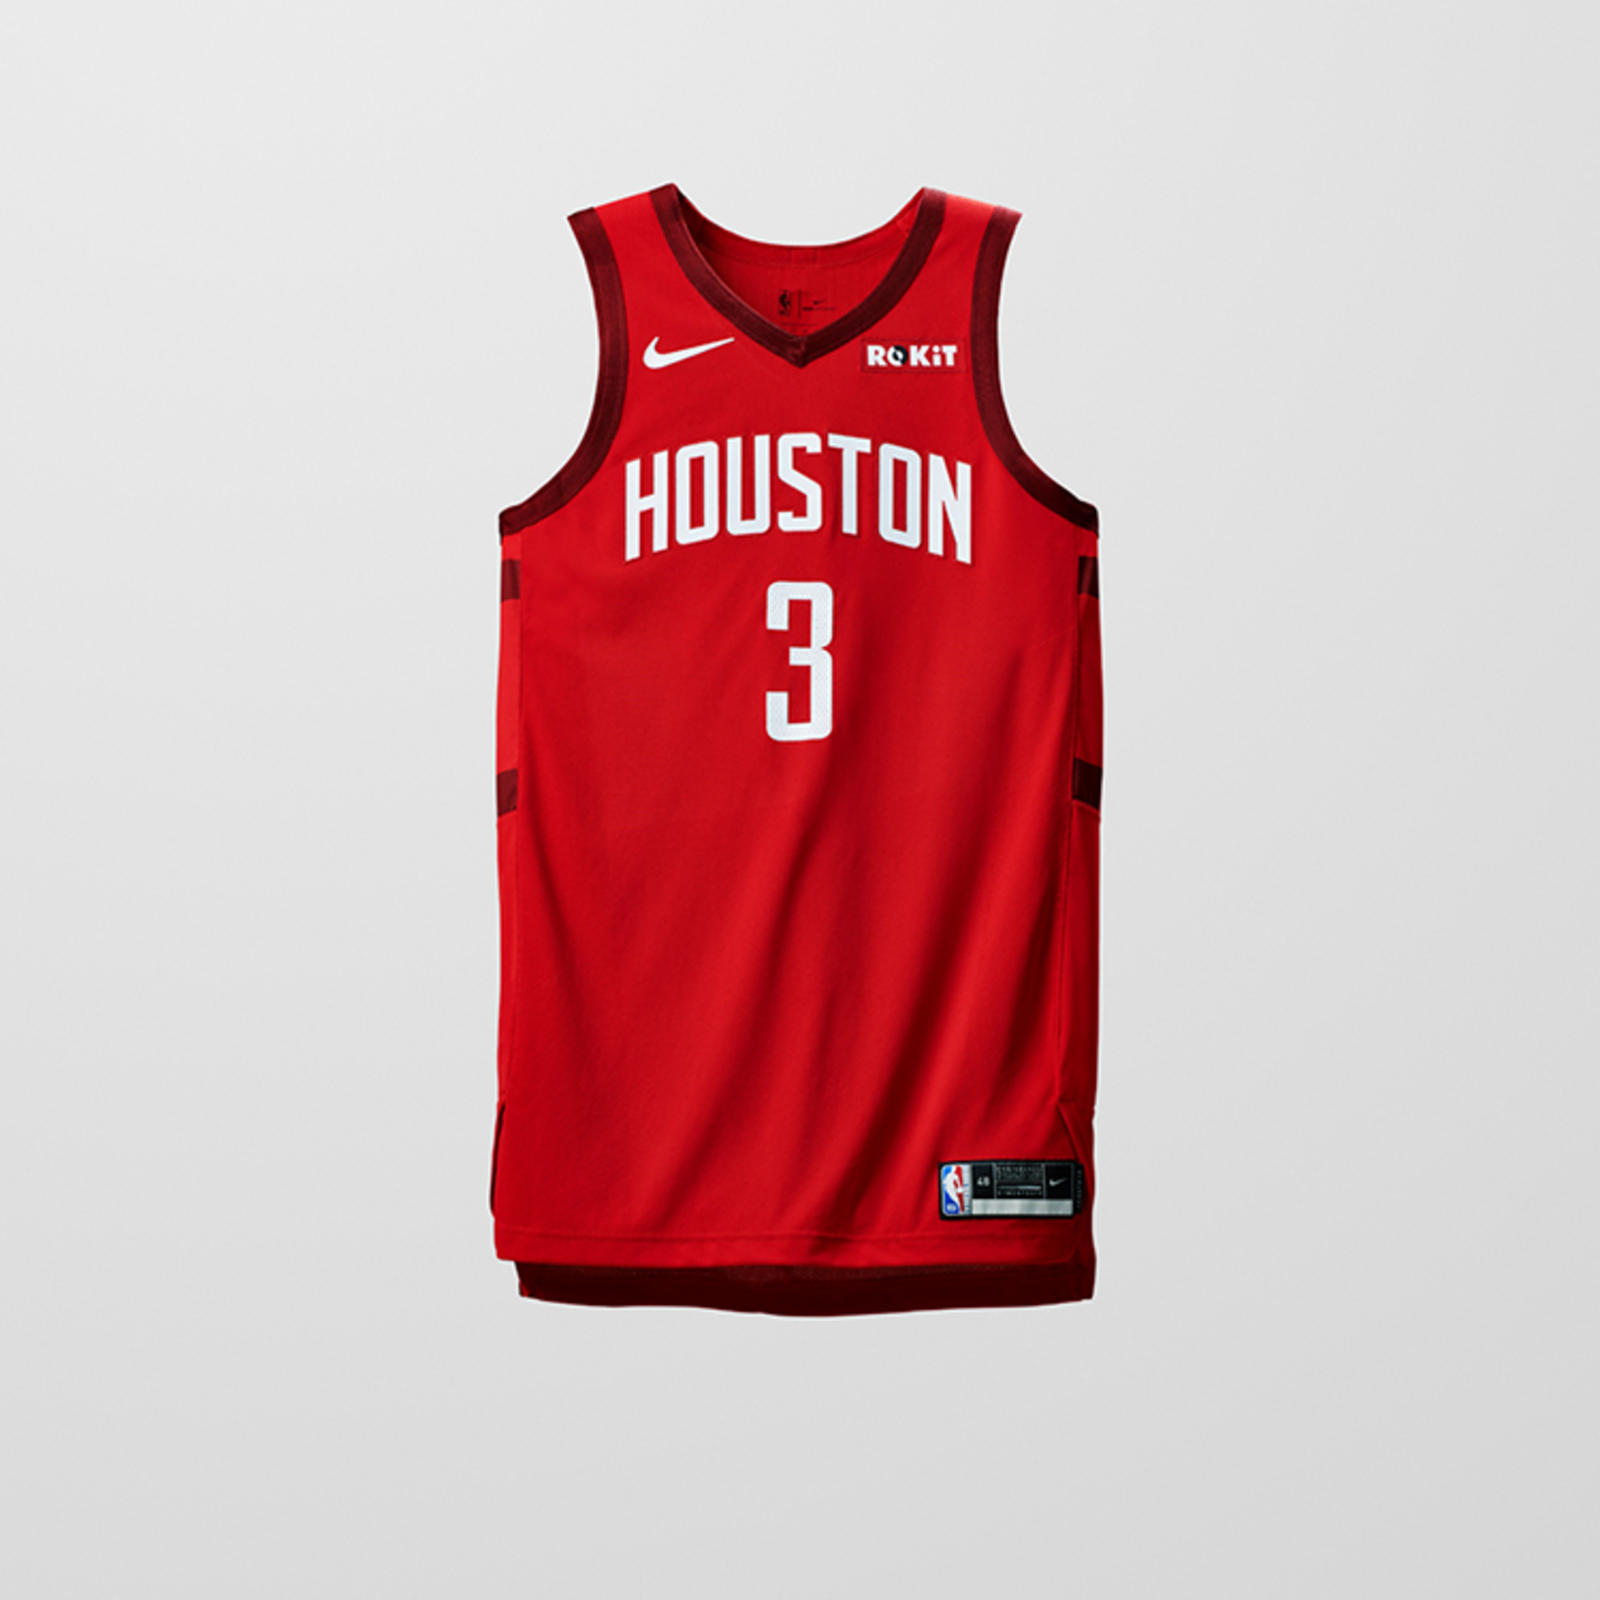 51a01323a8a Introducing the Nike x NBA EARNED Edition Uniforms 1